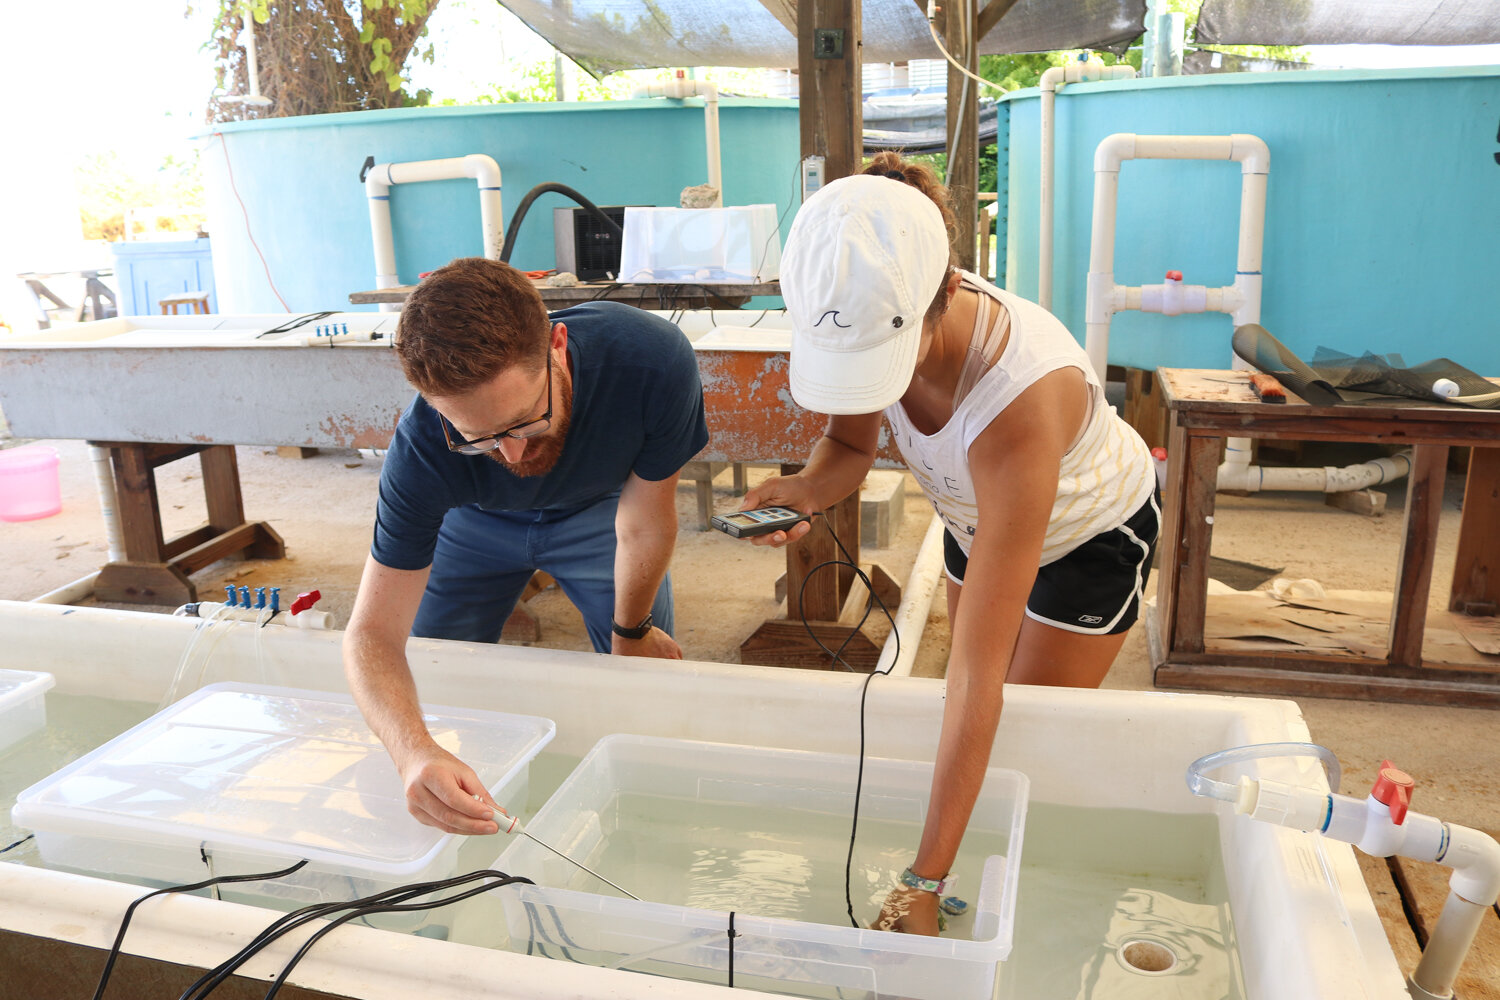 Dr. Ross Cunning (Shedd Aquarium) and Ph.D. student Liv Williamson (University of Miami) monitor temperature and light levels in one of the 8 experimental aquaria. Newly settled coral recruits will be added to each aquarium, where they will be exposed to different temperatures and symbiont availability treatments for several weeks.